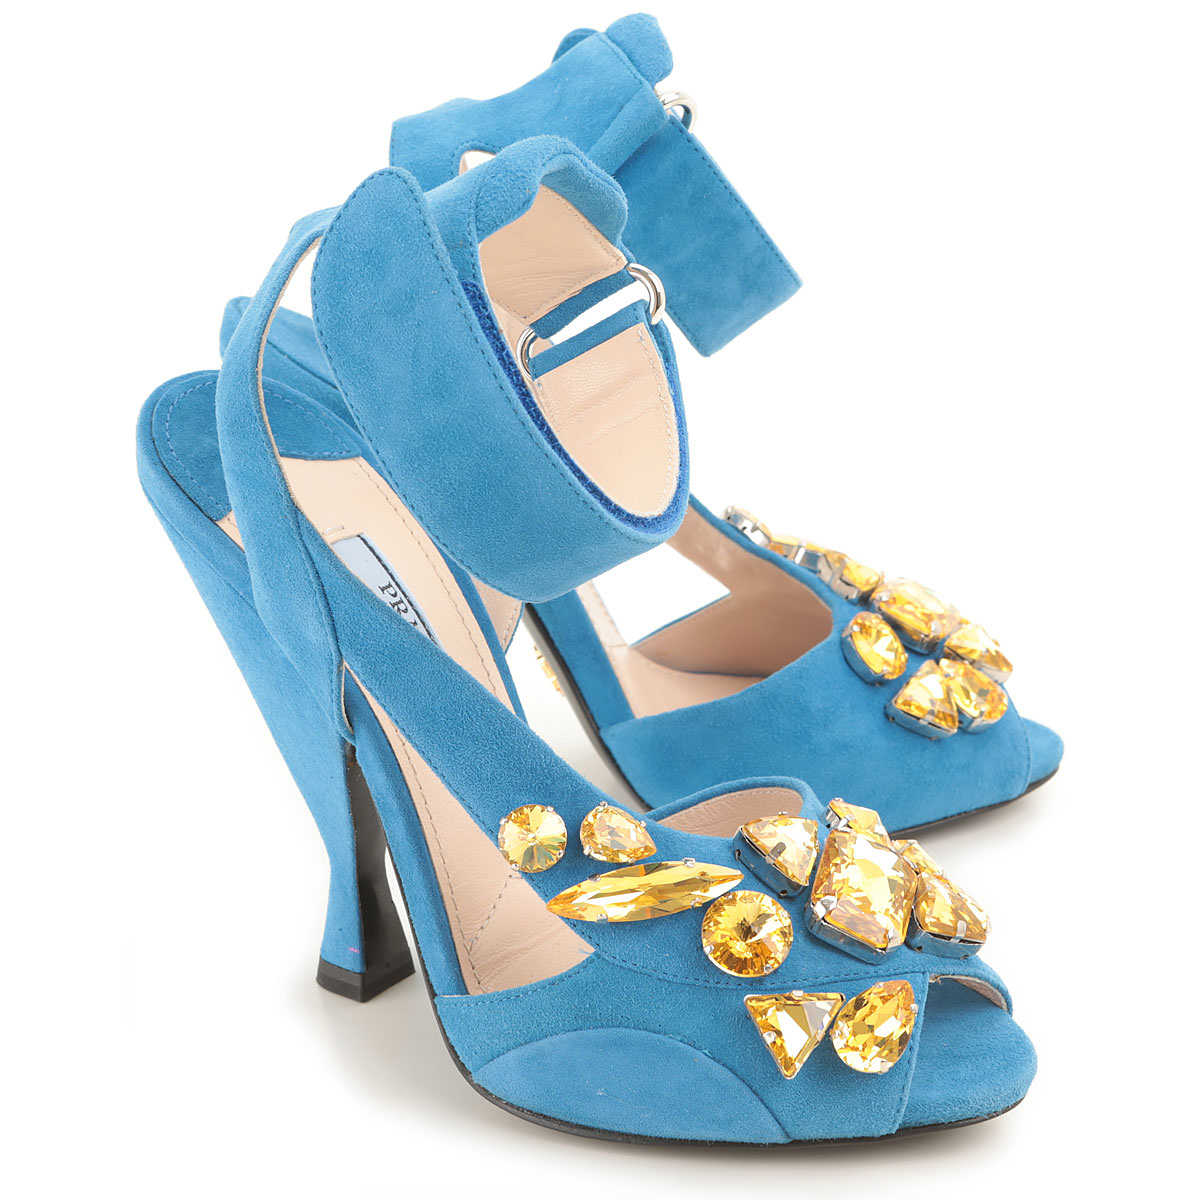 Prada Sandals for Women On Sale in Outlet Skyblue DK - GOOFASH - Womens SANDALS